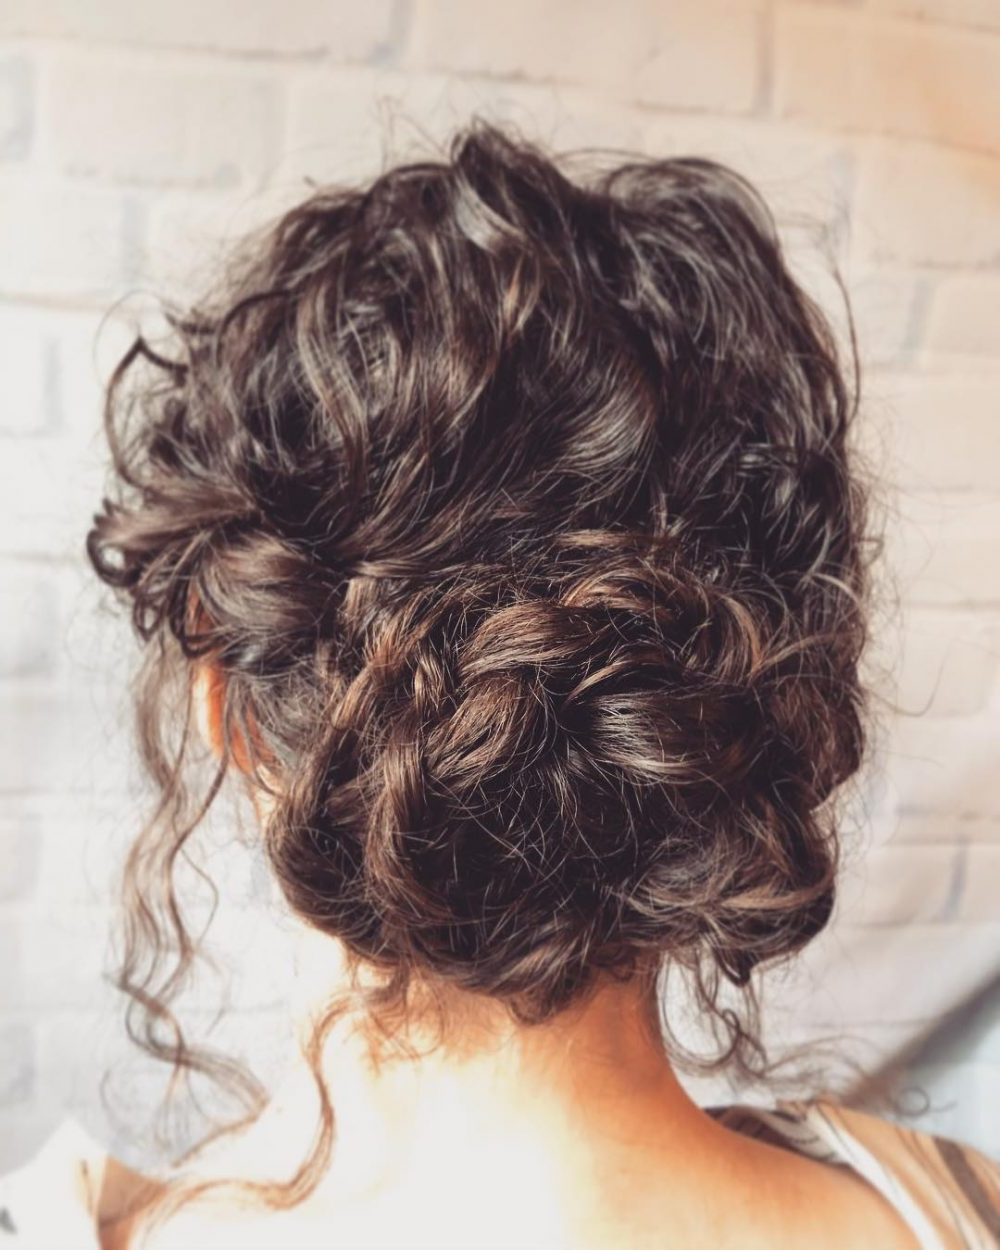 18 Stunning Curly Prom Hairstyles For 2019 – Updos, Down Do's & Braids! With Popular Formal Curly Hairdo For Long Hairstyles (View 1 of 20)